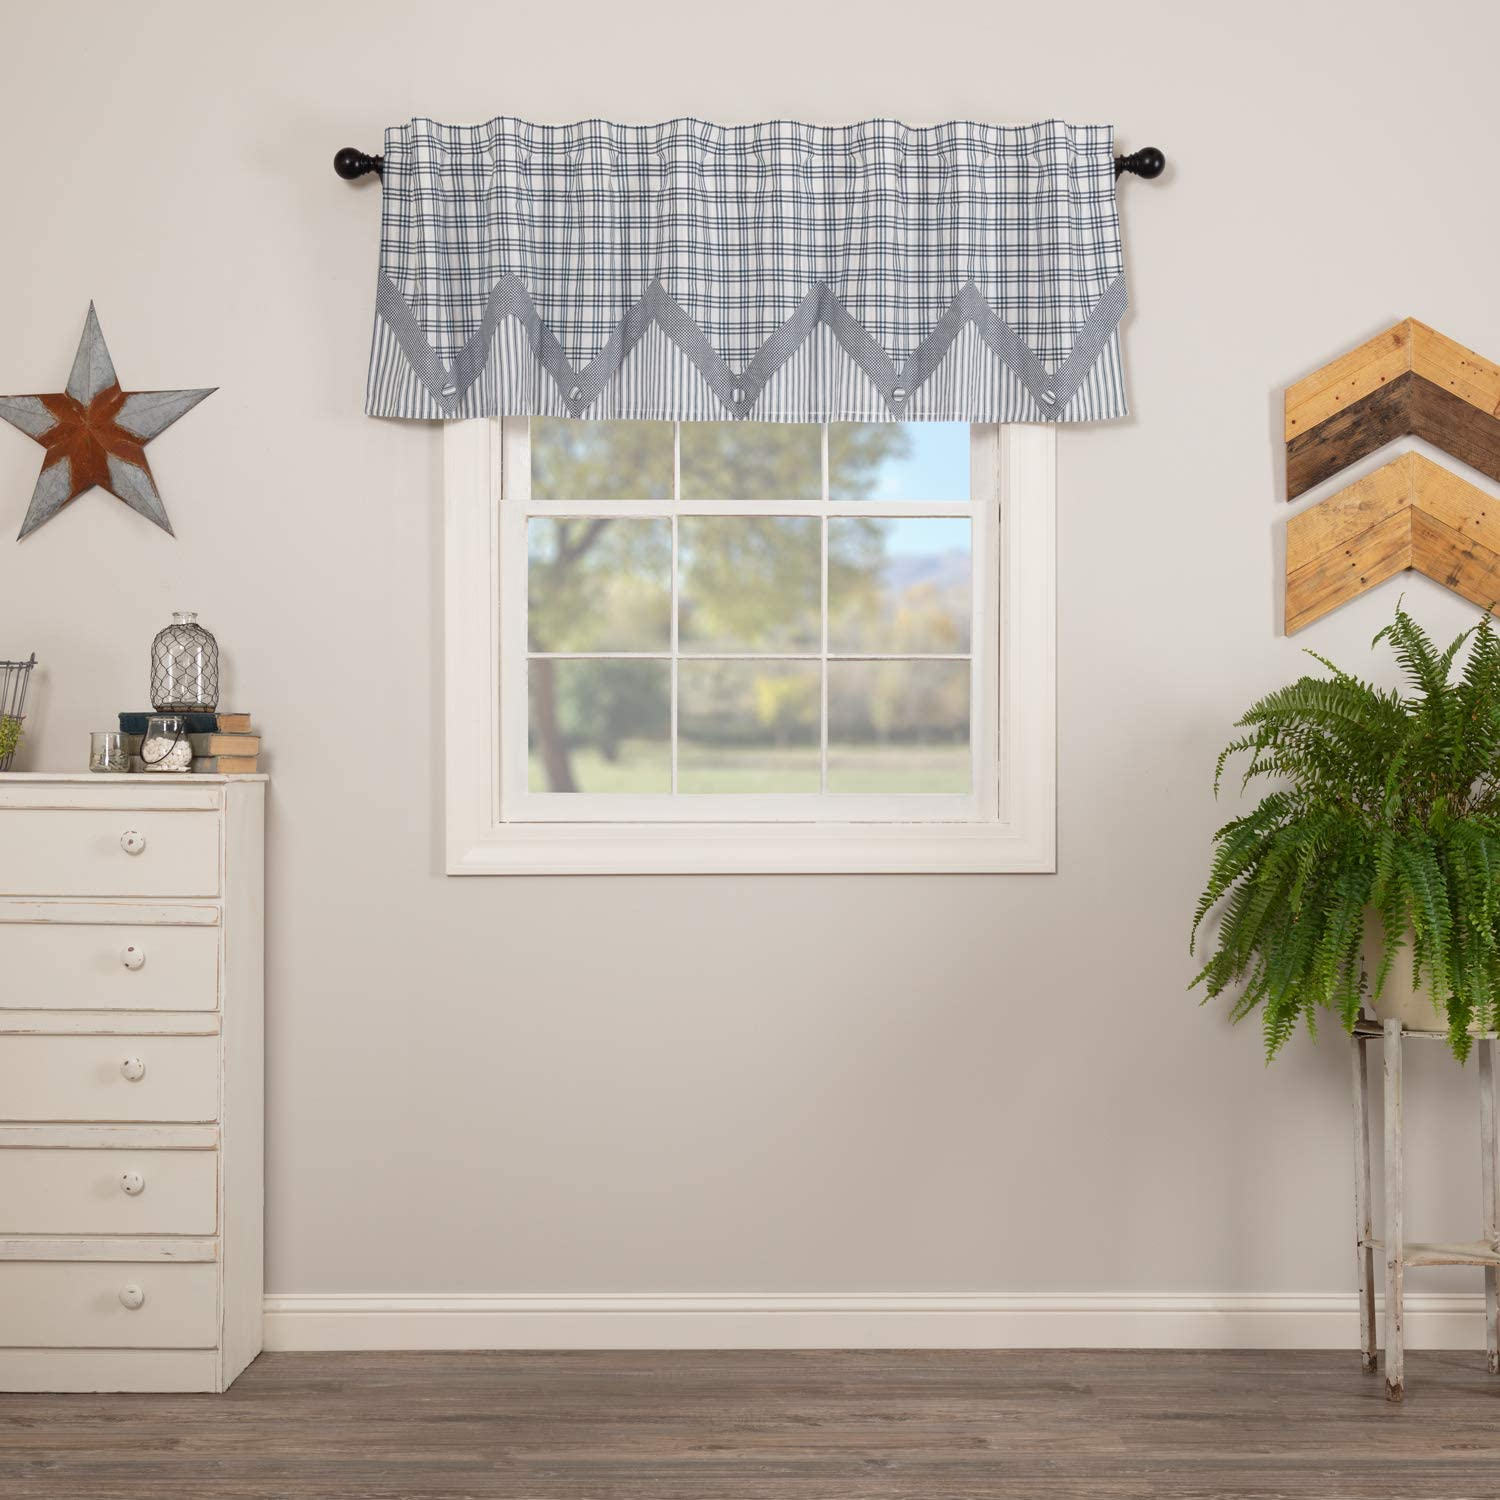 VHC Brands Farmhouse Kitchen Sawyer Mill Rod Pocket Cotton Hanging Loops Pointed Buttons Chambray Plaid 20x72 Curtain, Valance, Blue